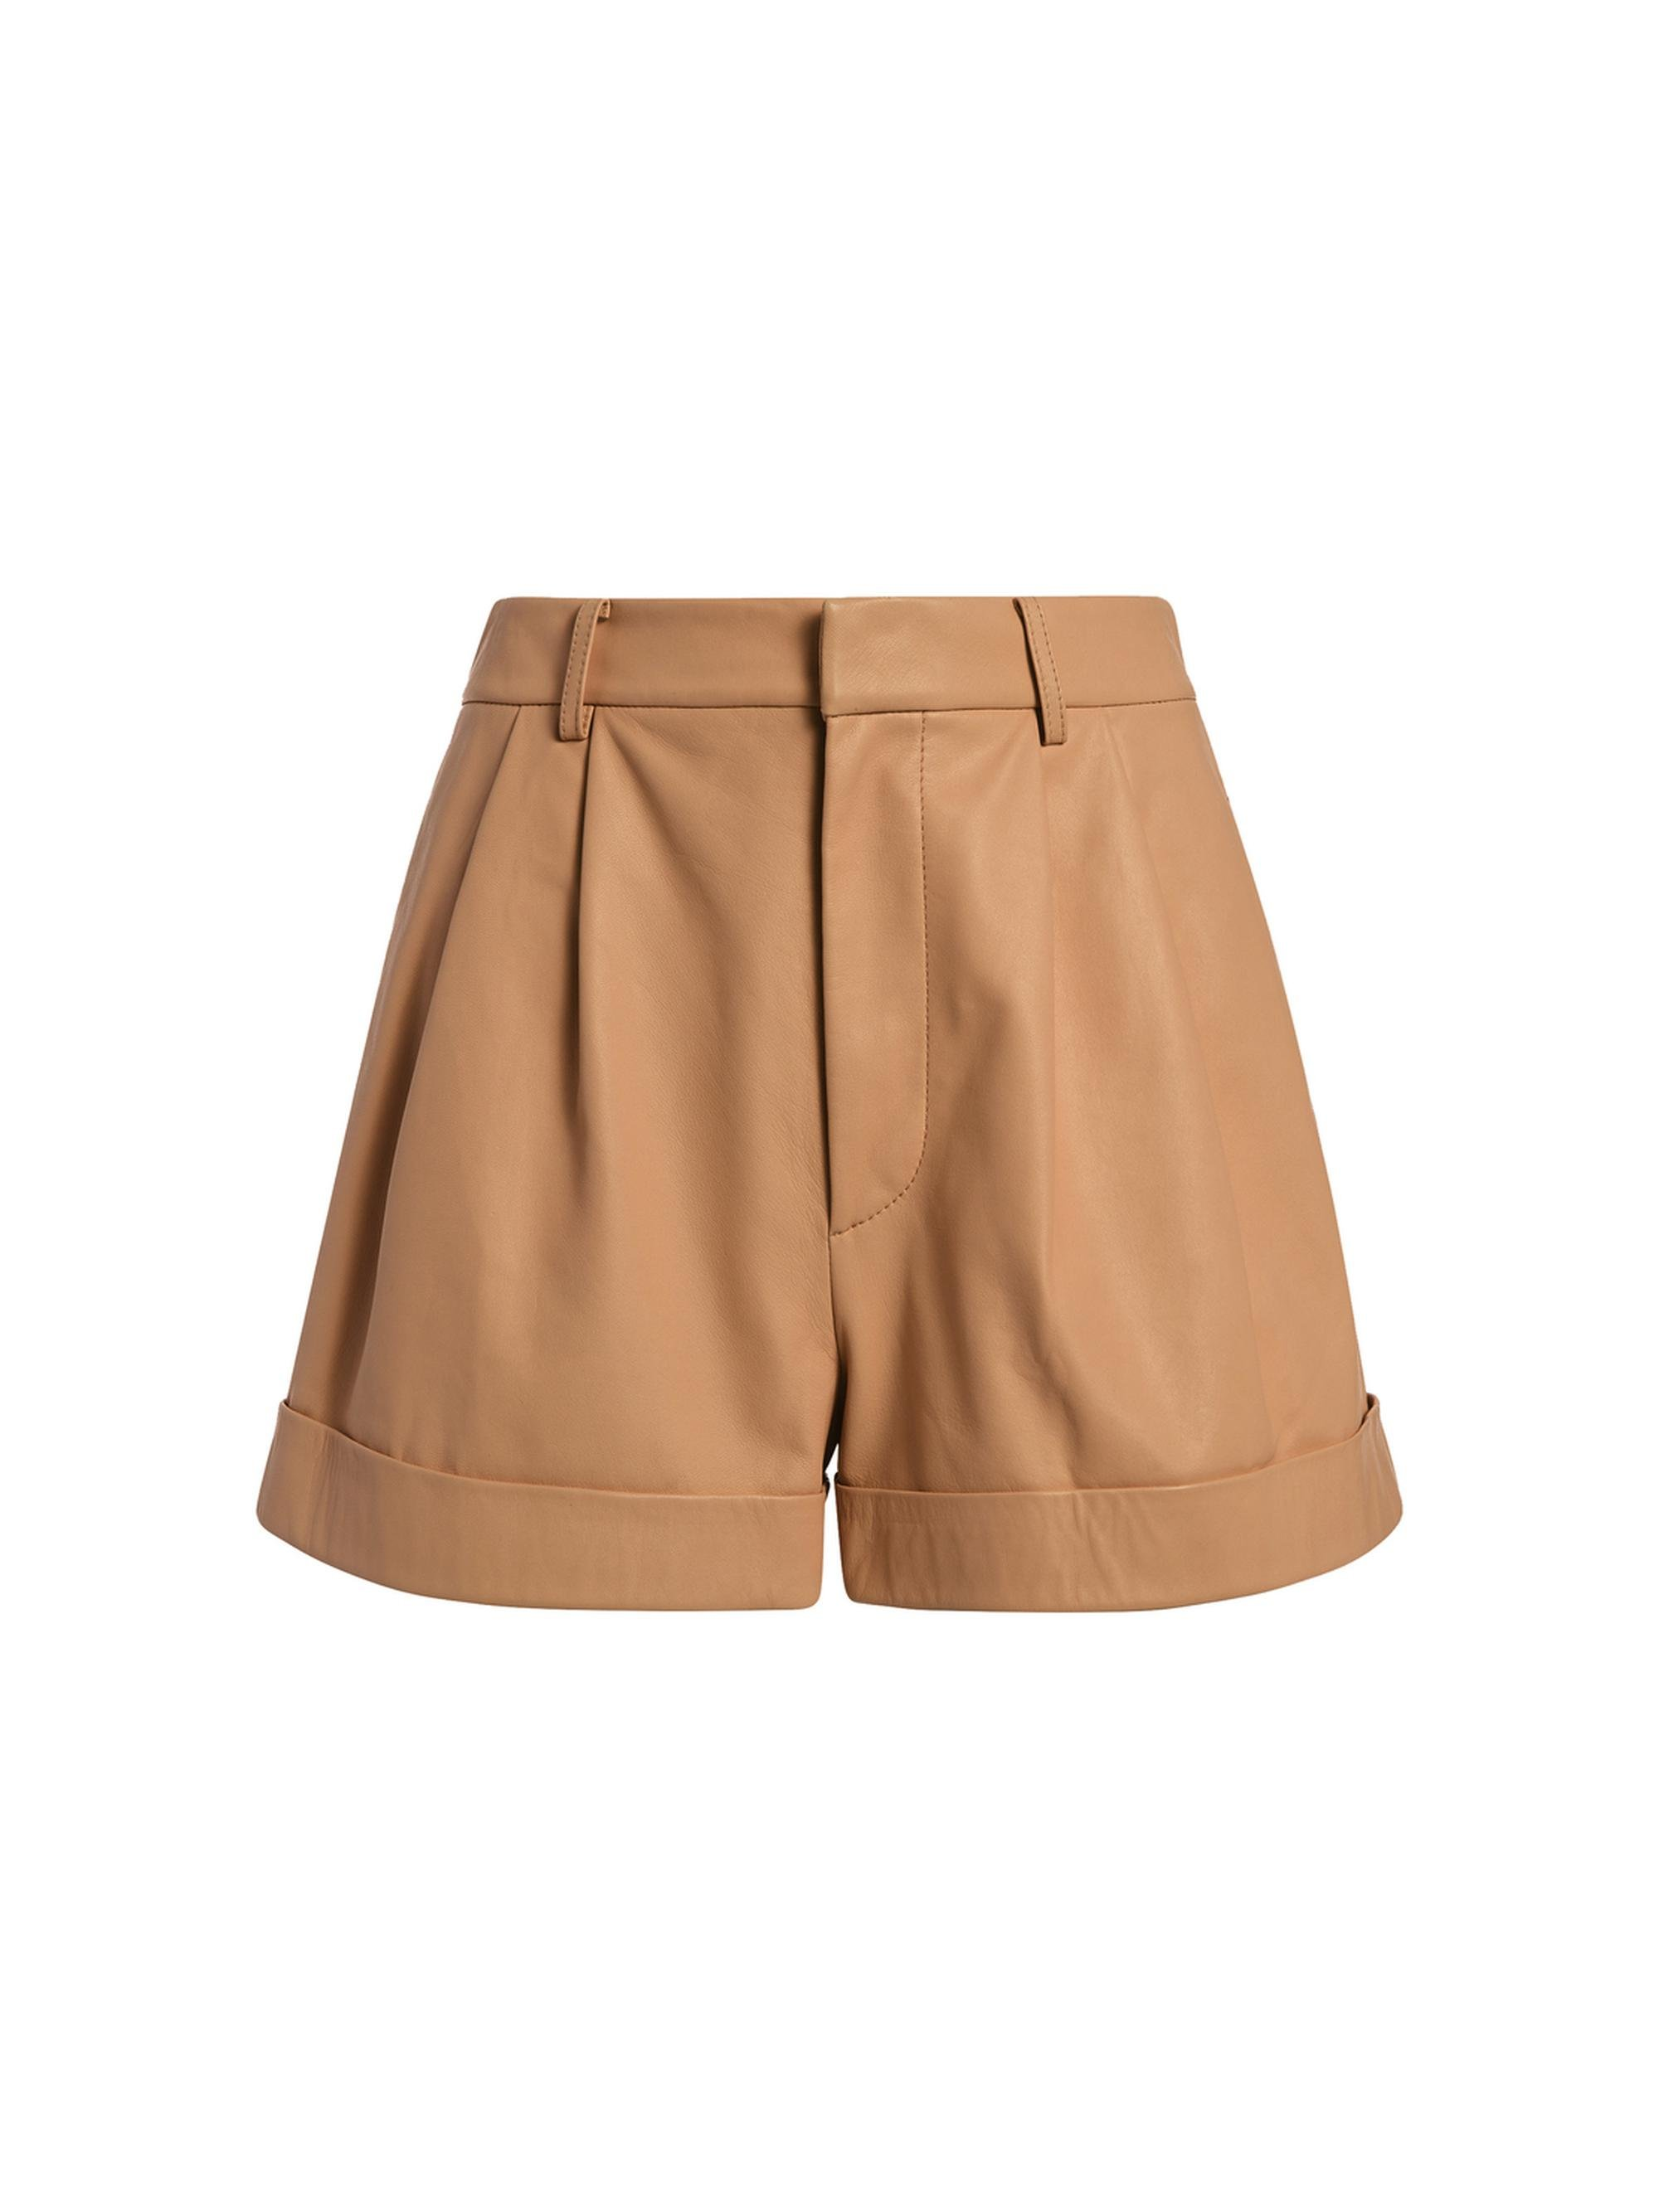 CONRY LEATHER PLEATED SHORTS 5